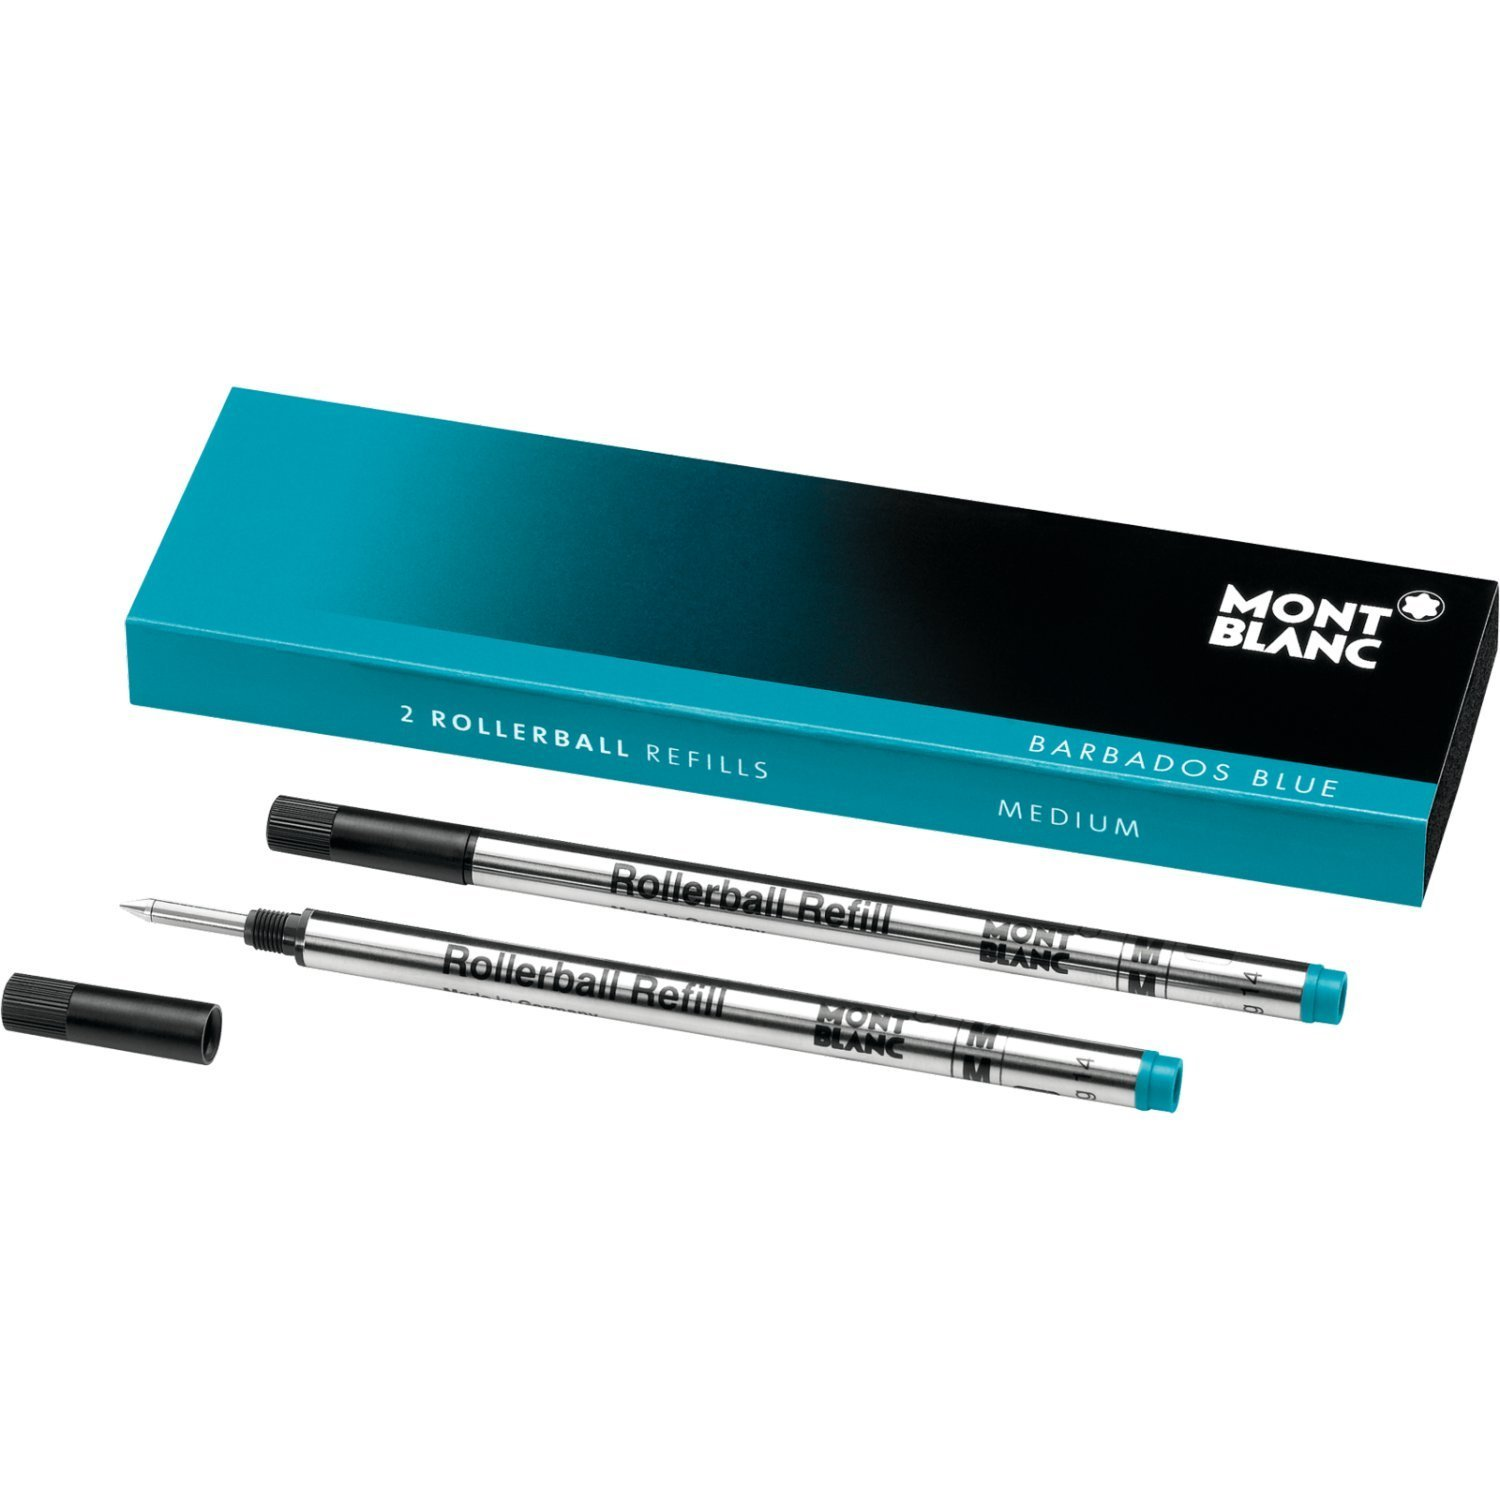 Montblanc Rollerball Refills (M) Barbados Blue 106932 / Quick-Drying Pen Refills for Montblanc Rollerball and Fineliner Pens / 2 x Bright Blue Pen Cartridges